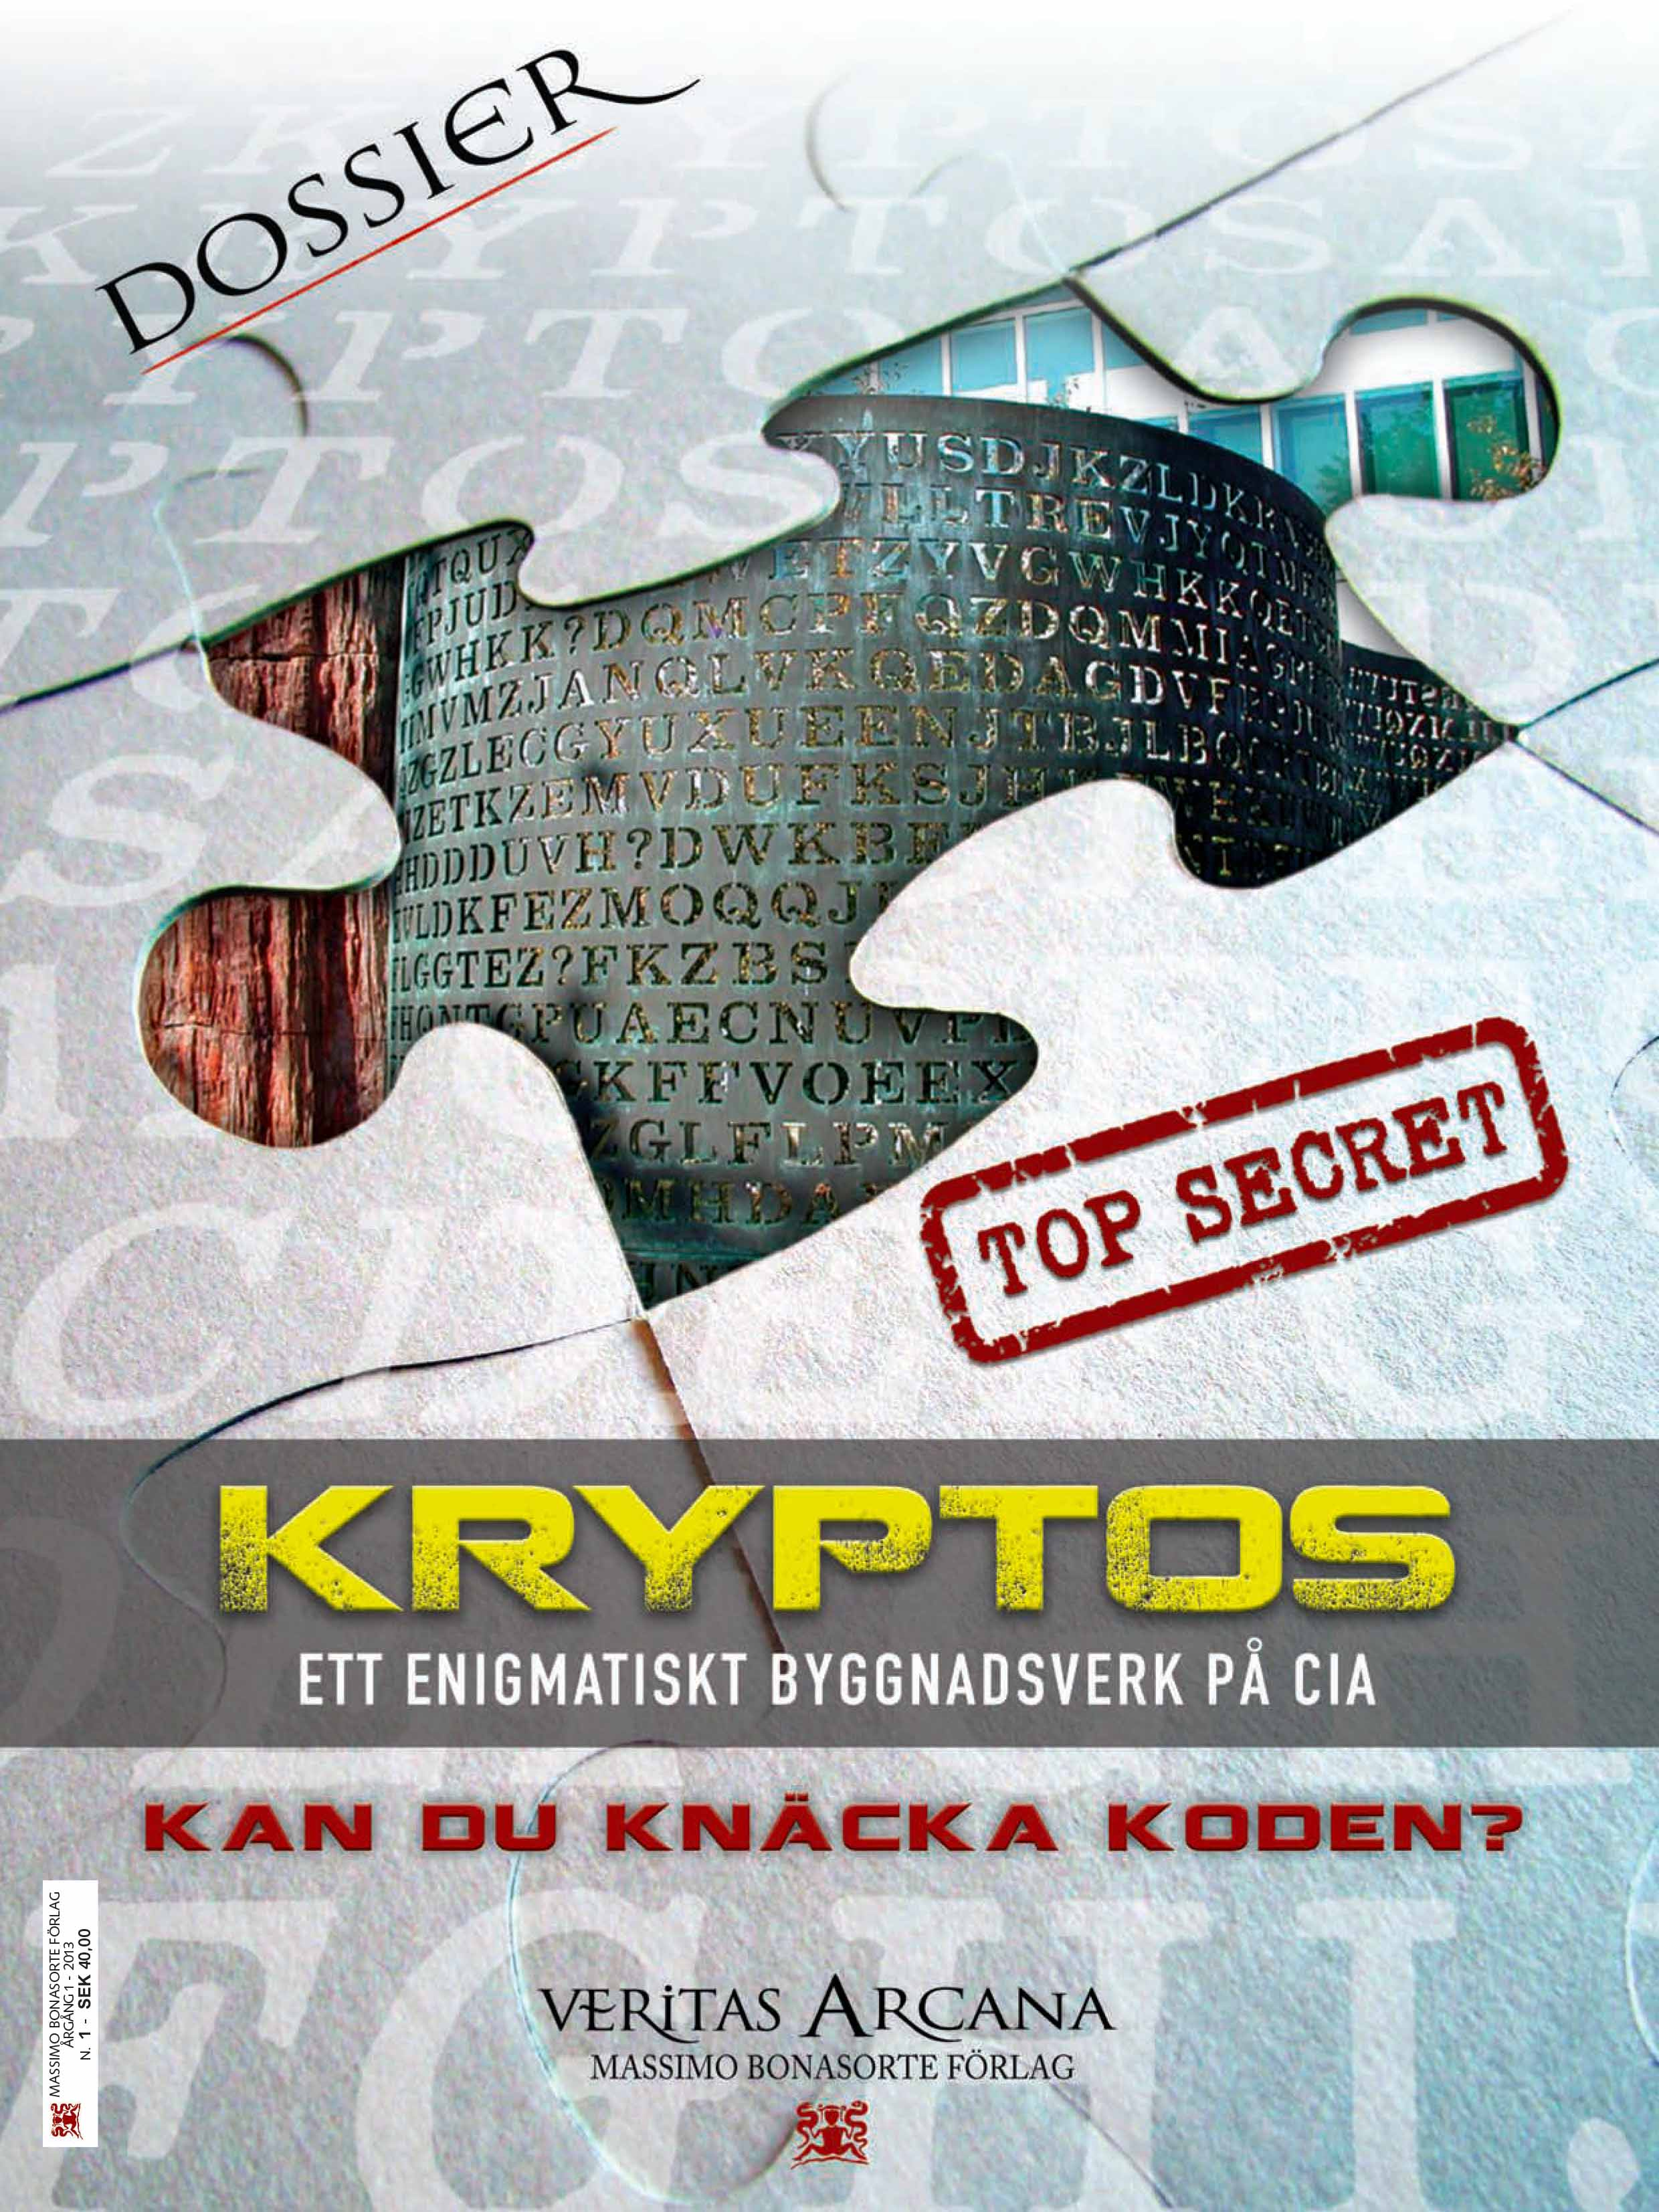 Veritas Arcana dossier_ kryptos.jpg